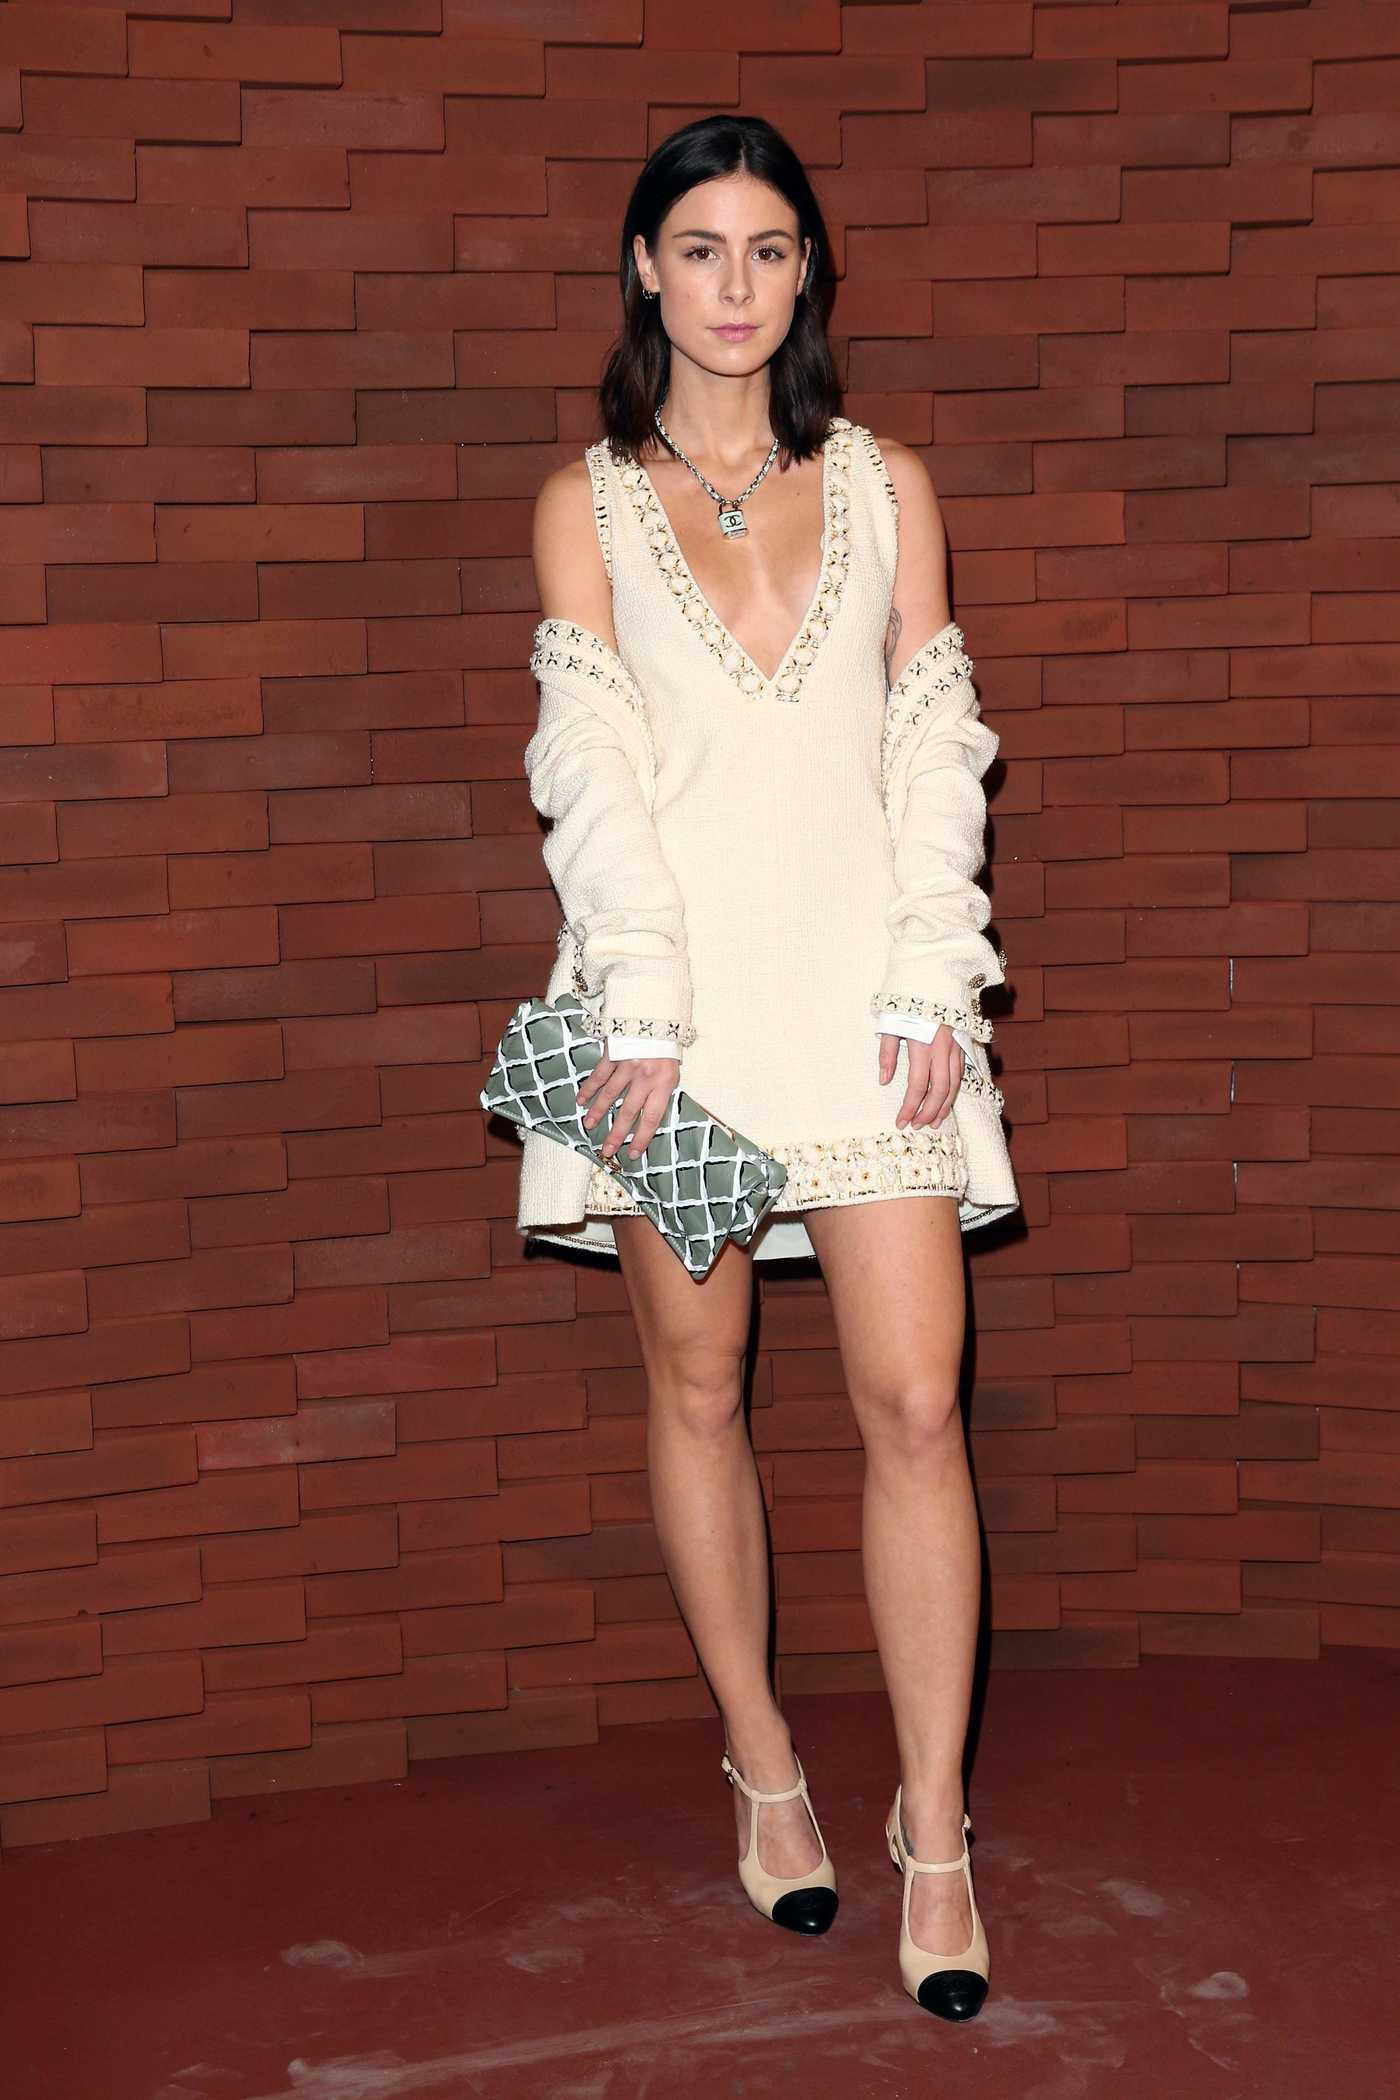 Lena Meyer-Landrut at the Chanel Metiers d'Art Collection Fashion Show in Hamburg 12/06/2017